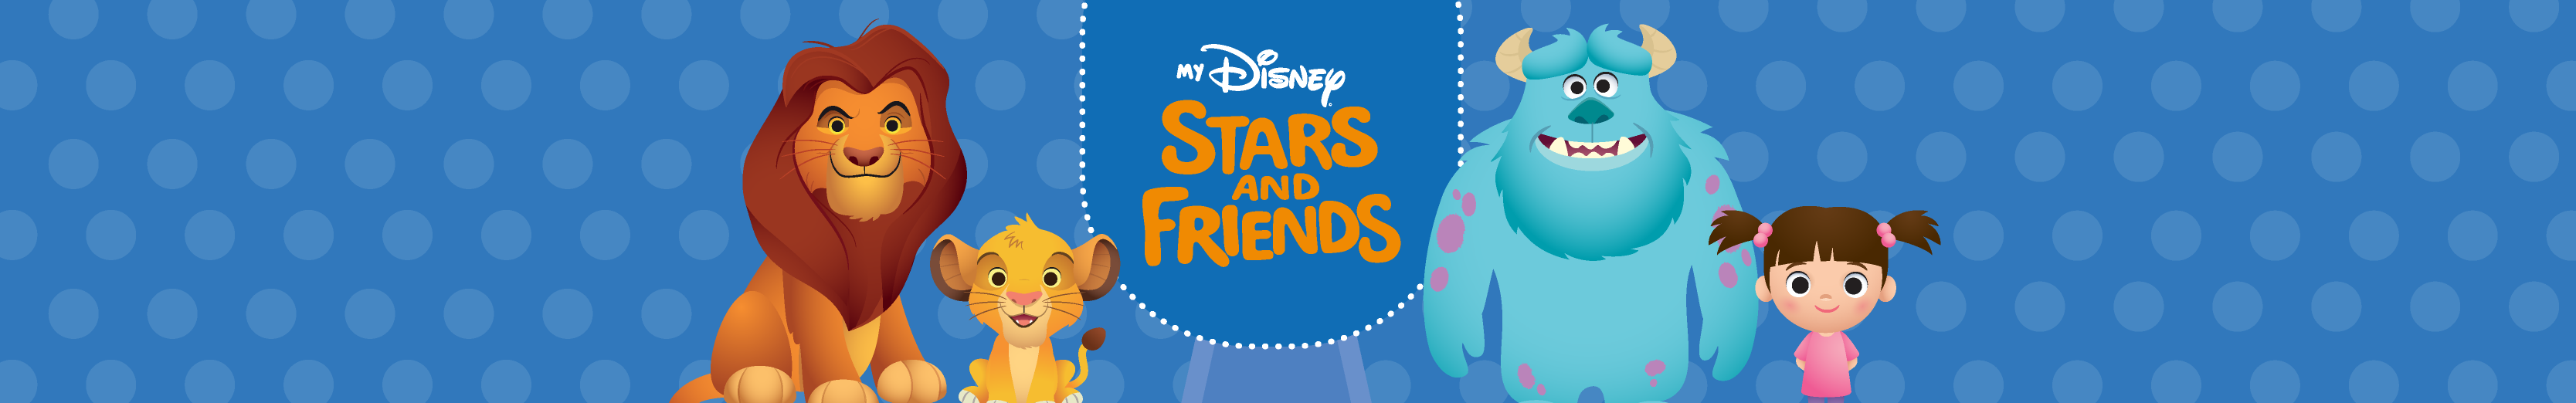 My Disney Stars and Friends banner image